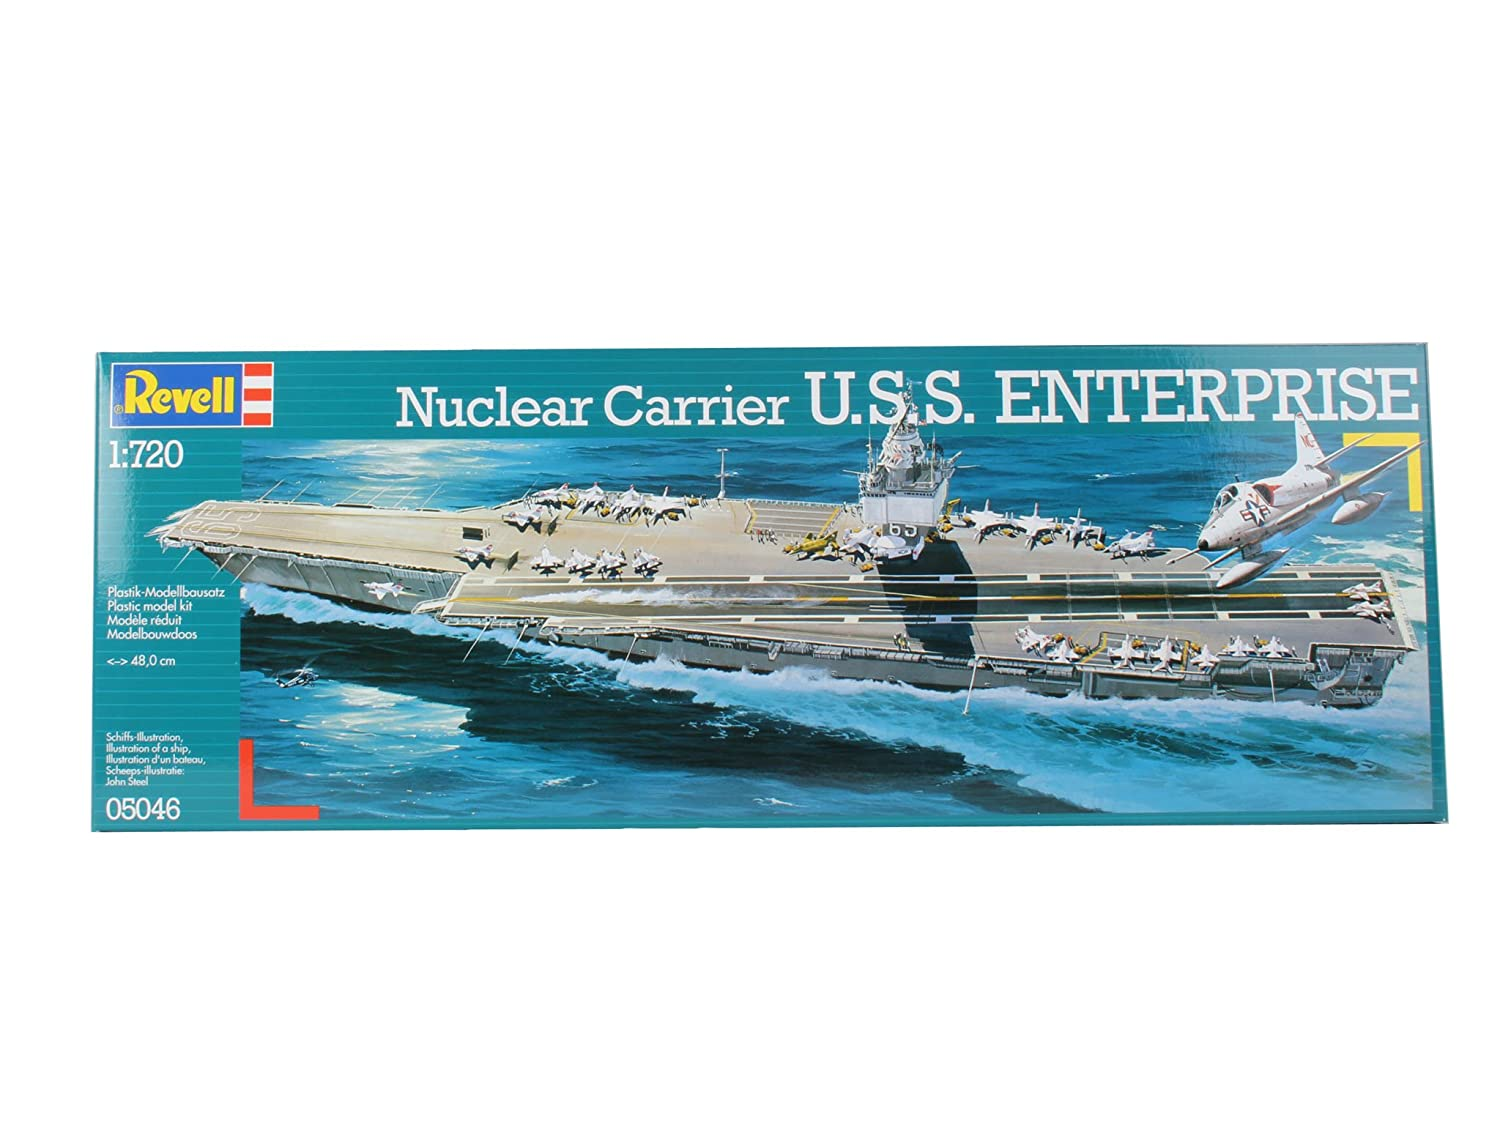 Revell 05046 U.S.S. Enterprise Model Kit 80-5046 9to11 12to16 Boats